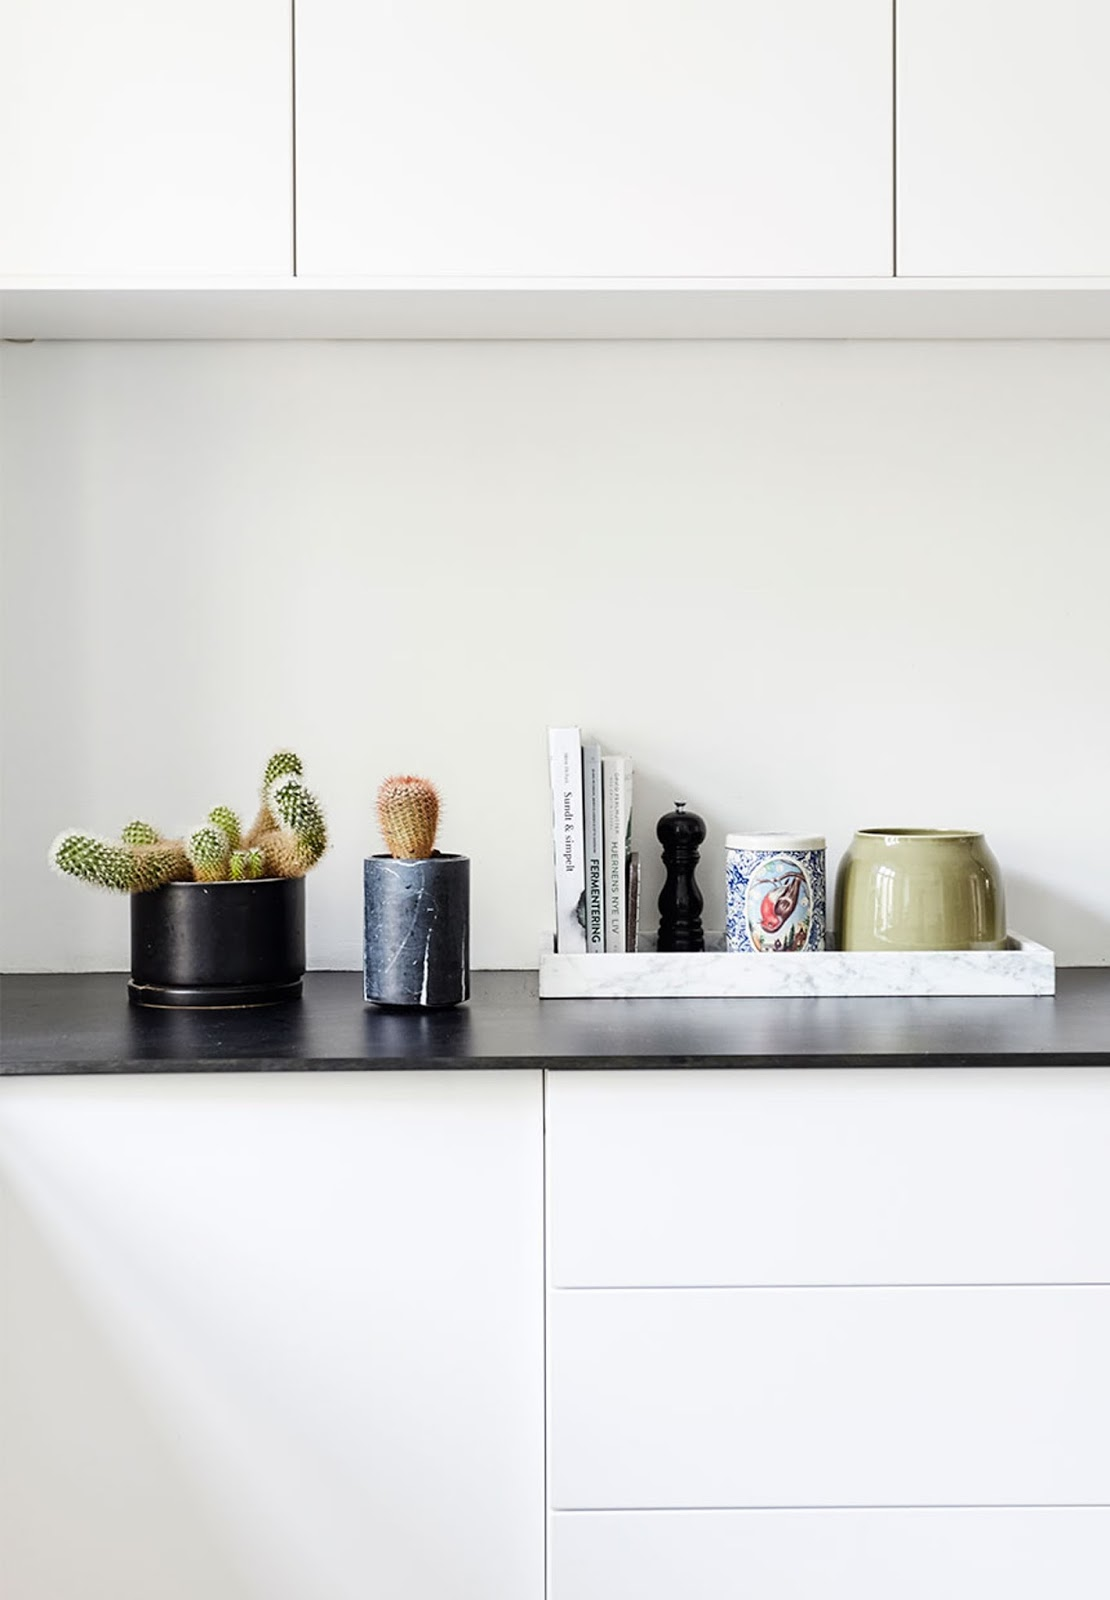 cactus, minimalist kitchen